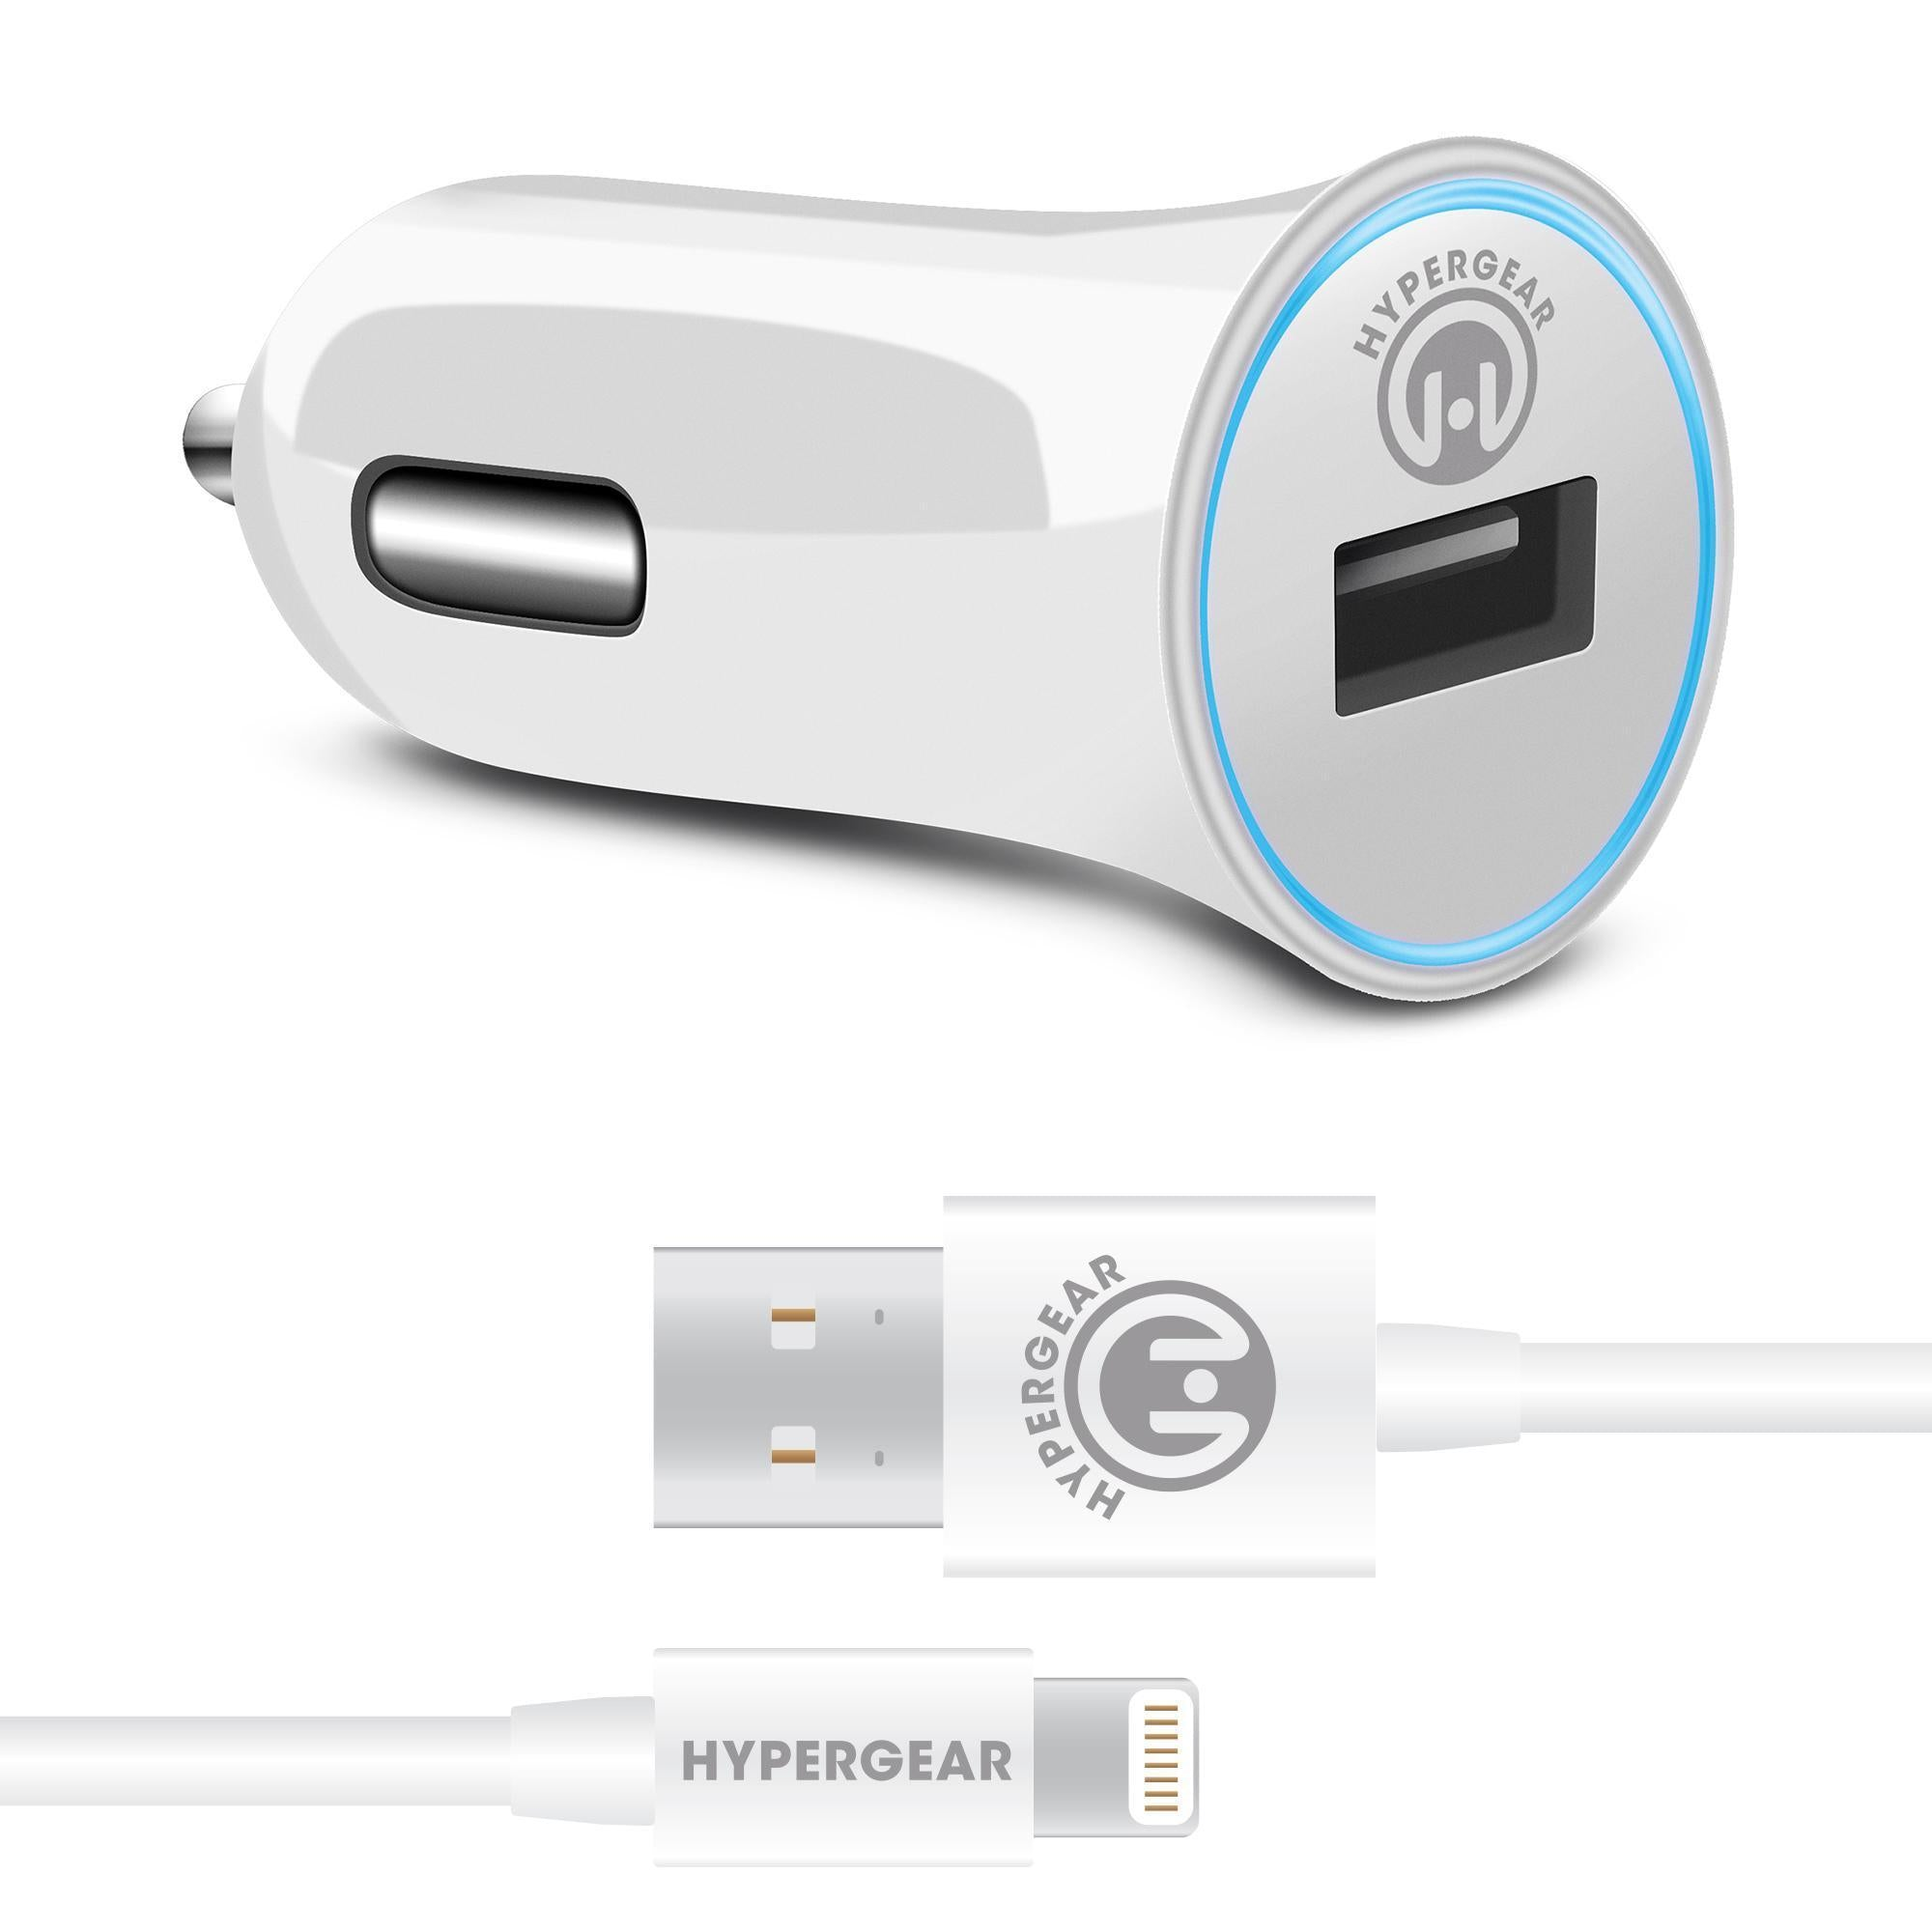 24a rapid vehicle charger hypergear general default title 24a rapid vehicle charger buycottarizona